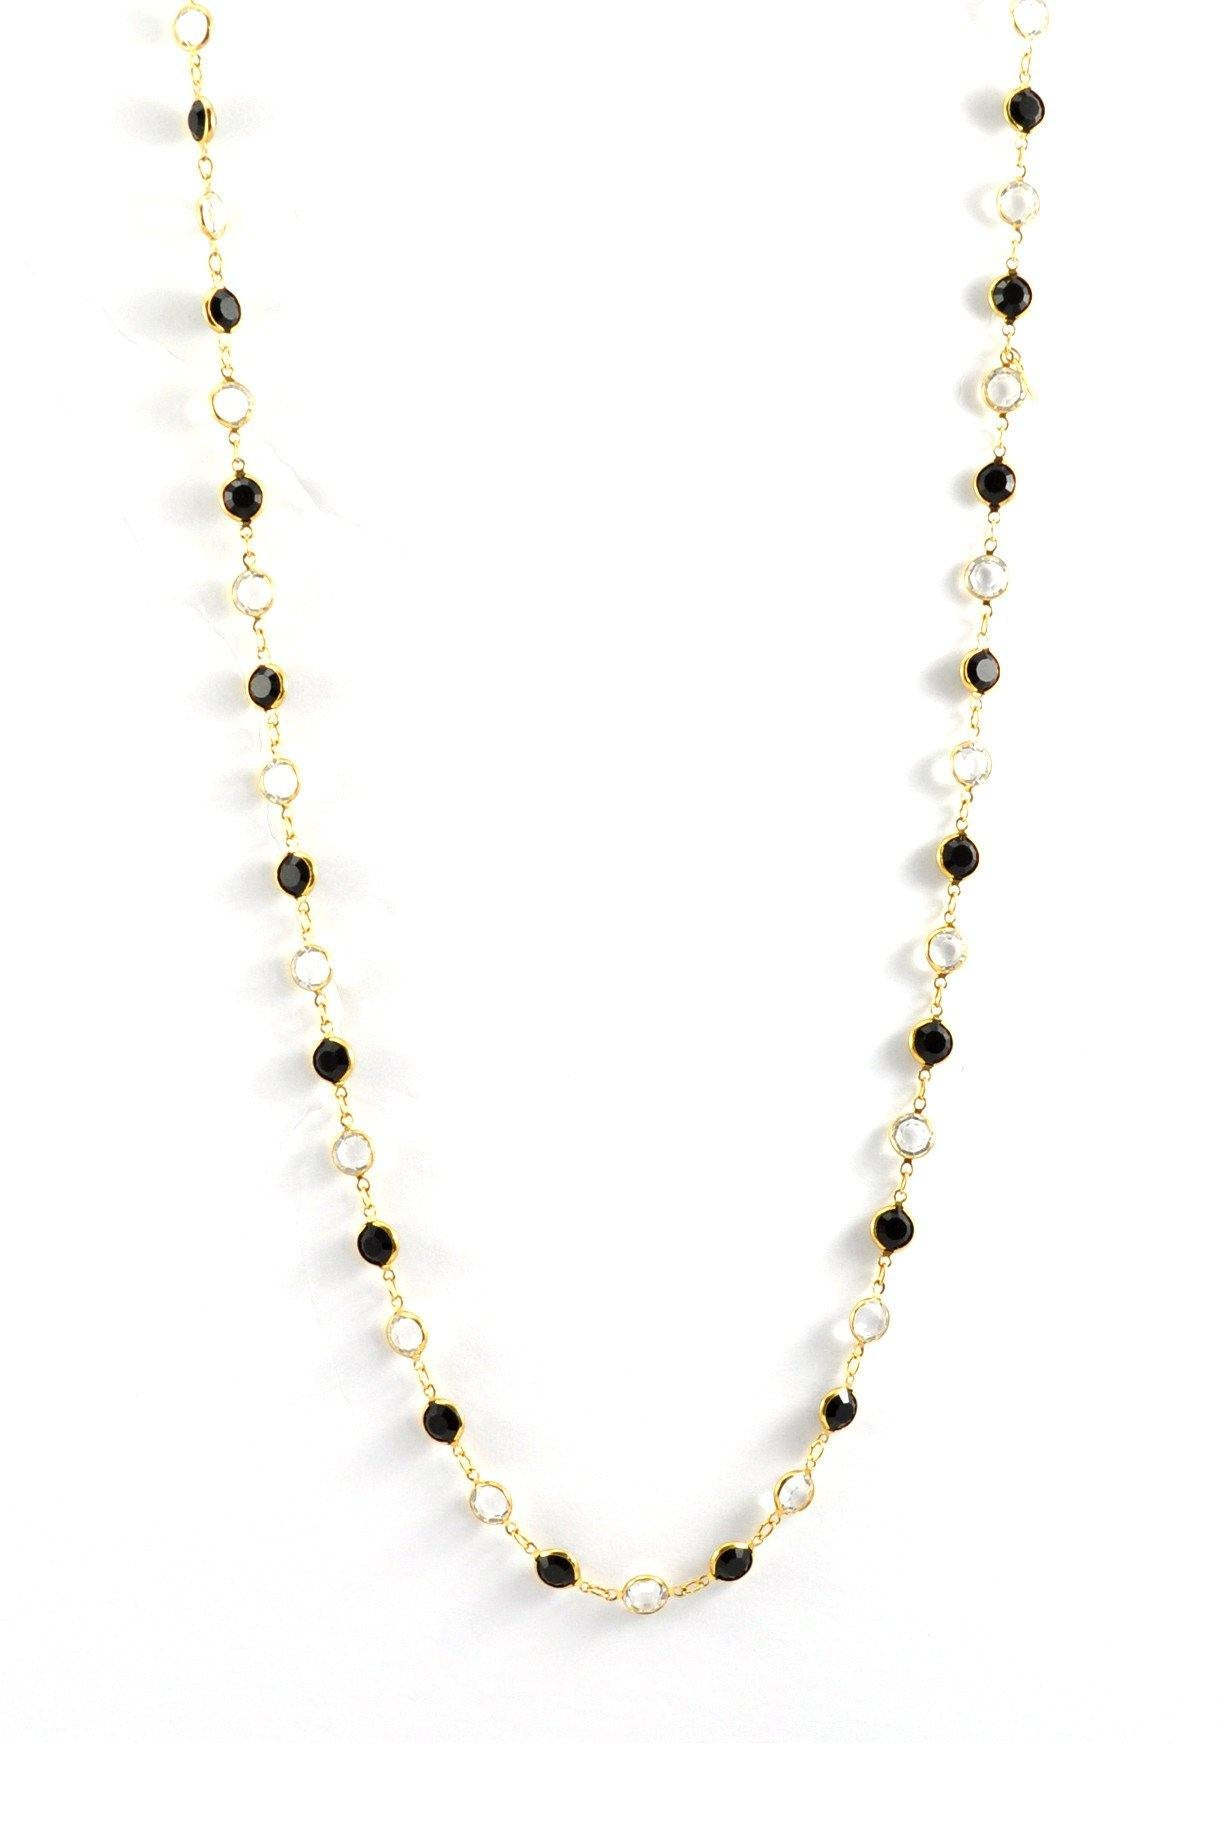 80s__Swarovski__Long Crystal Necklace